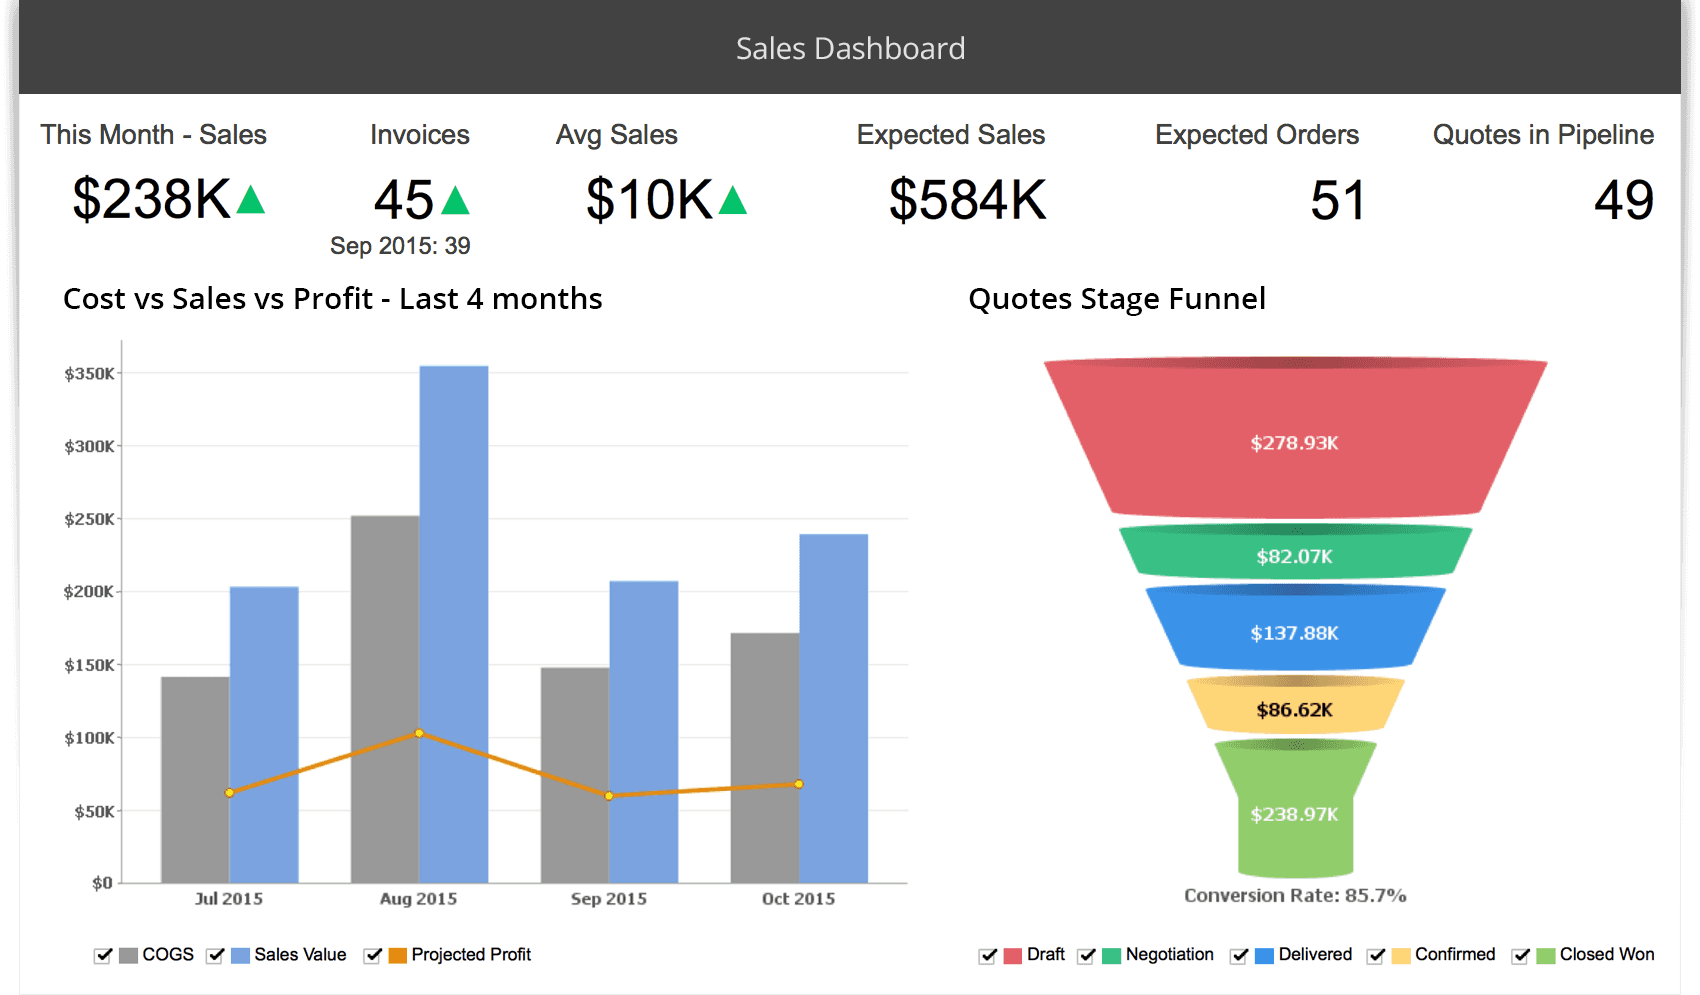 An example of an interactive dashboard for a sales department